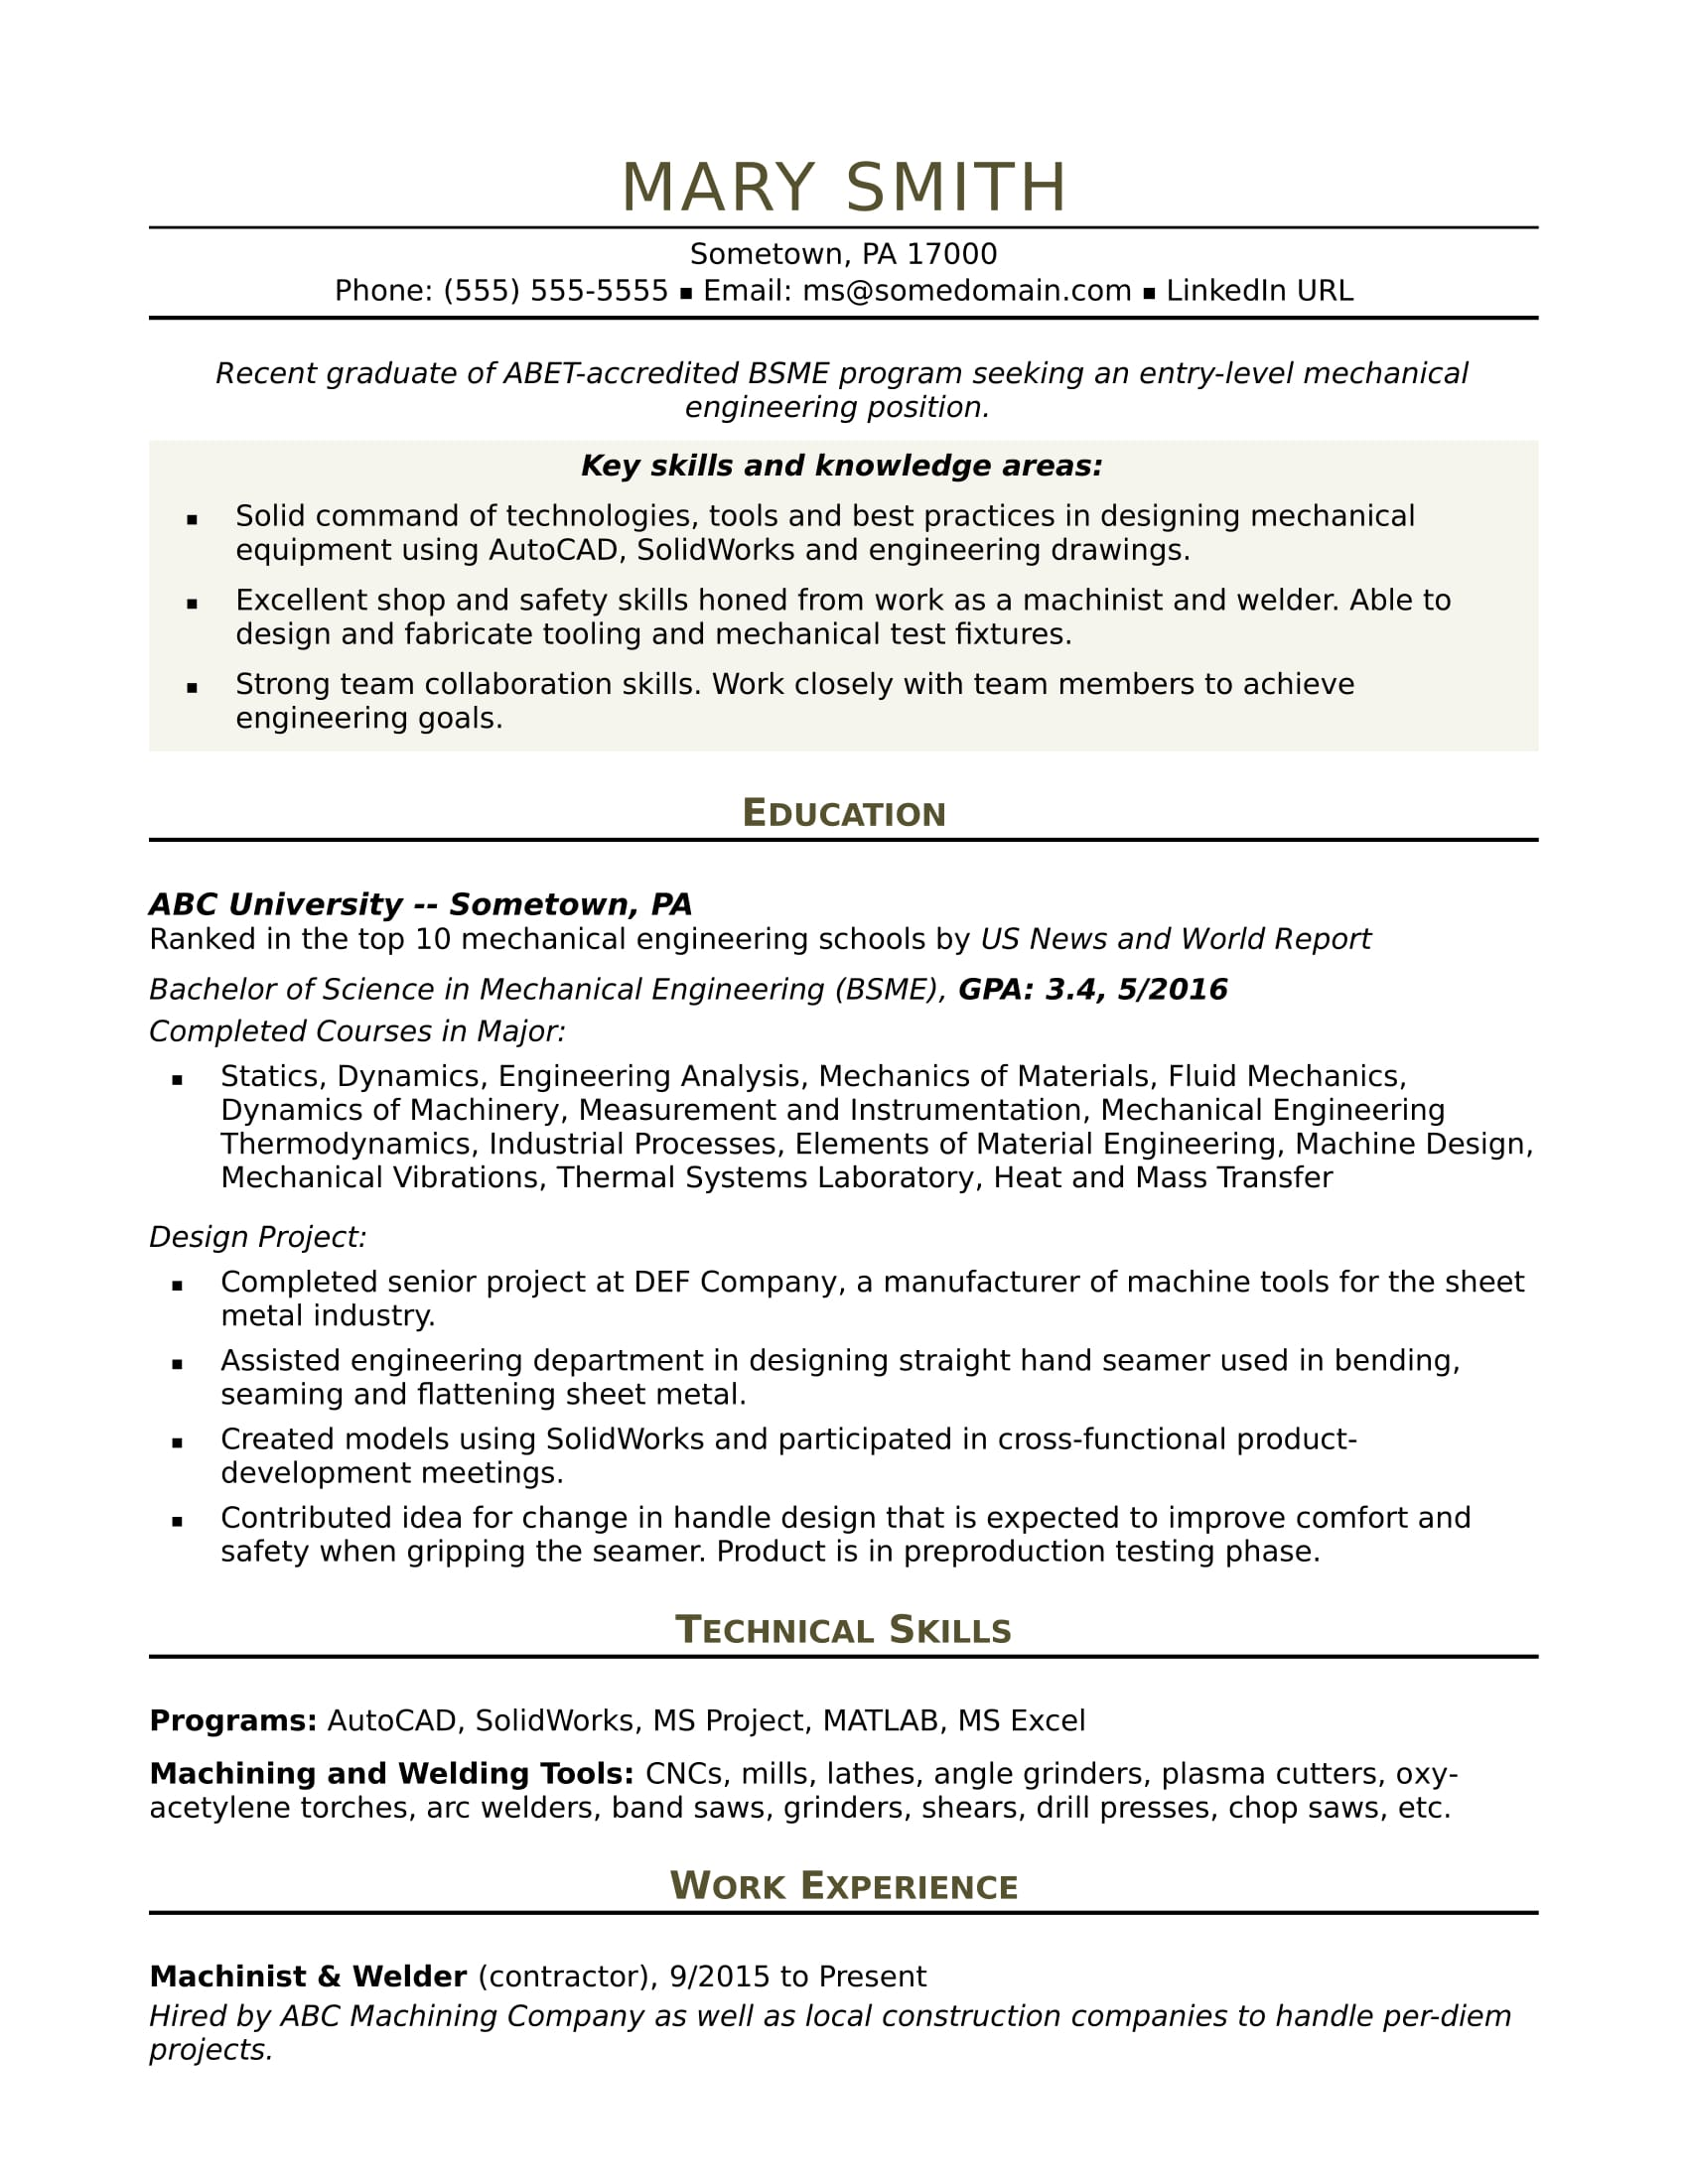 Resume For Internship For Engineering Students Krys Tk